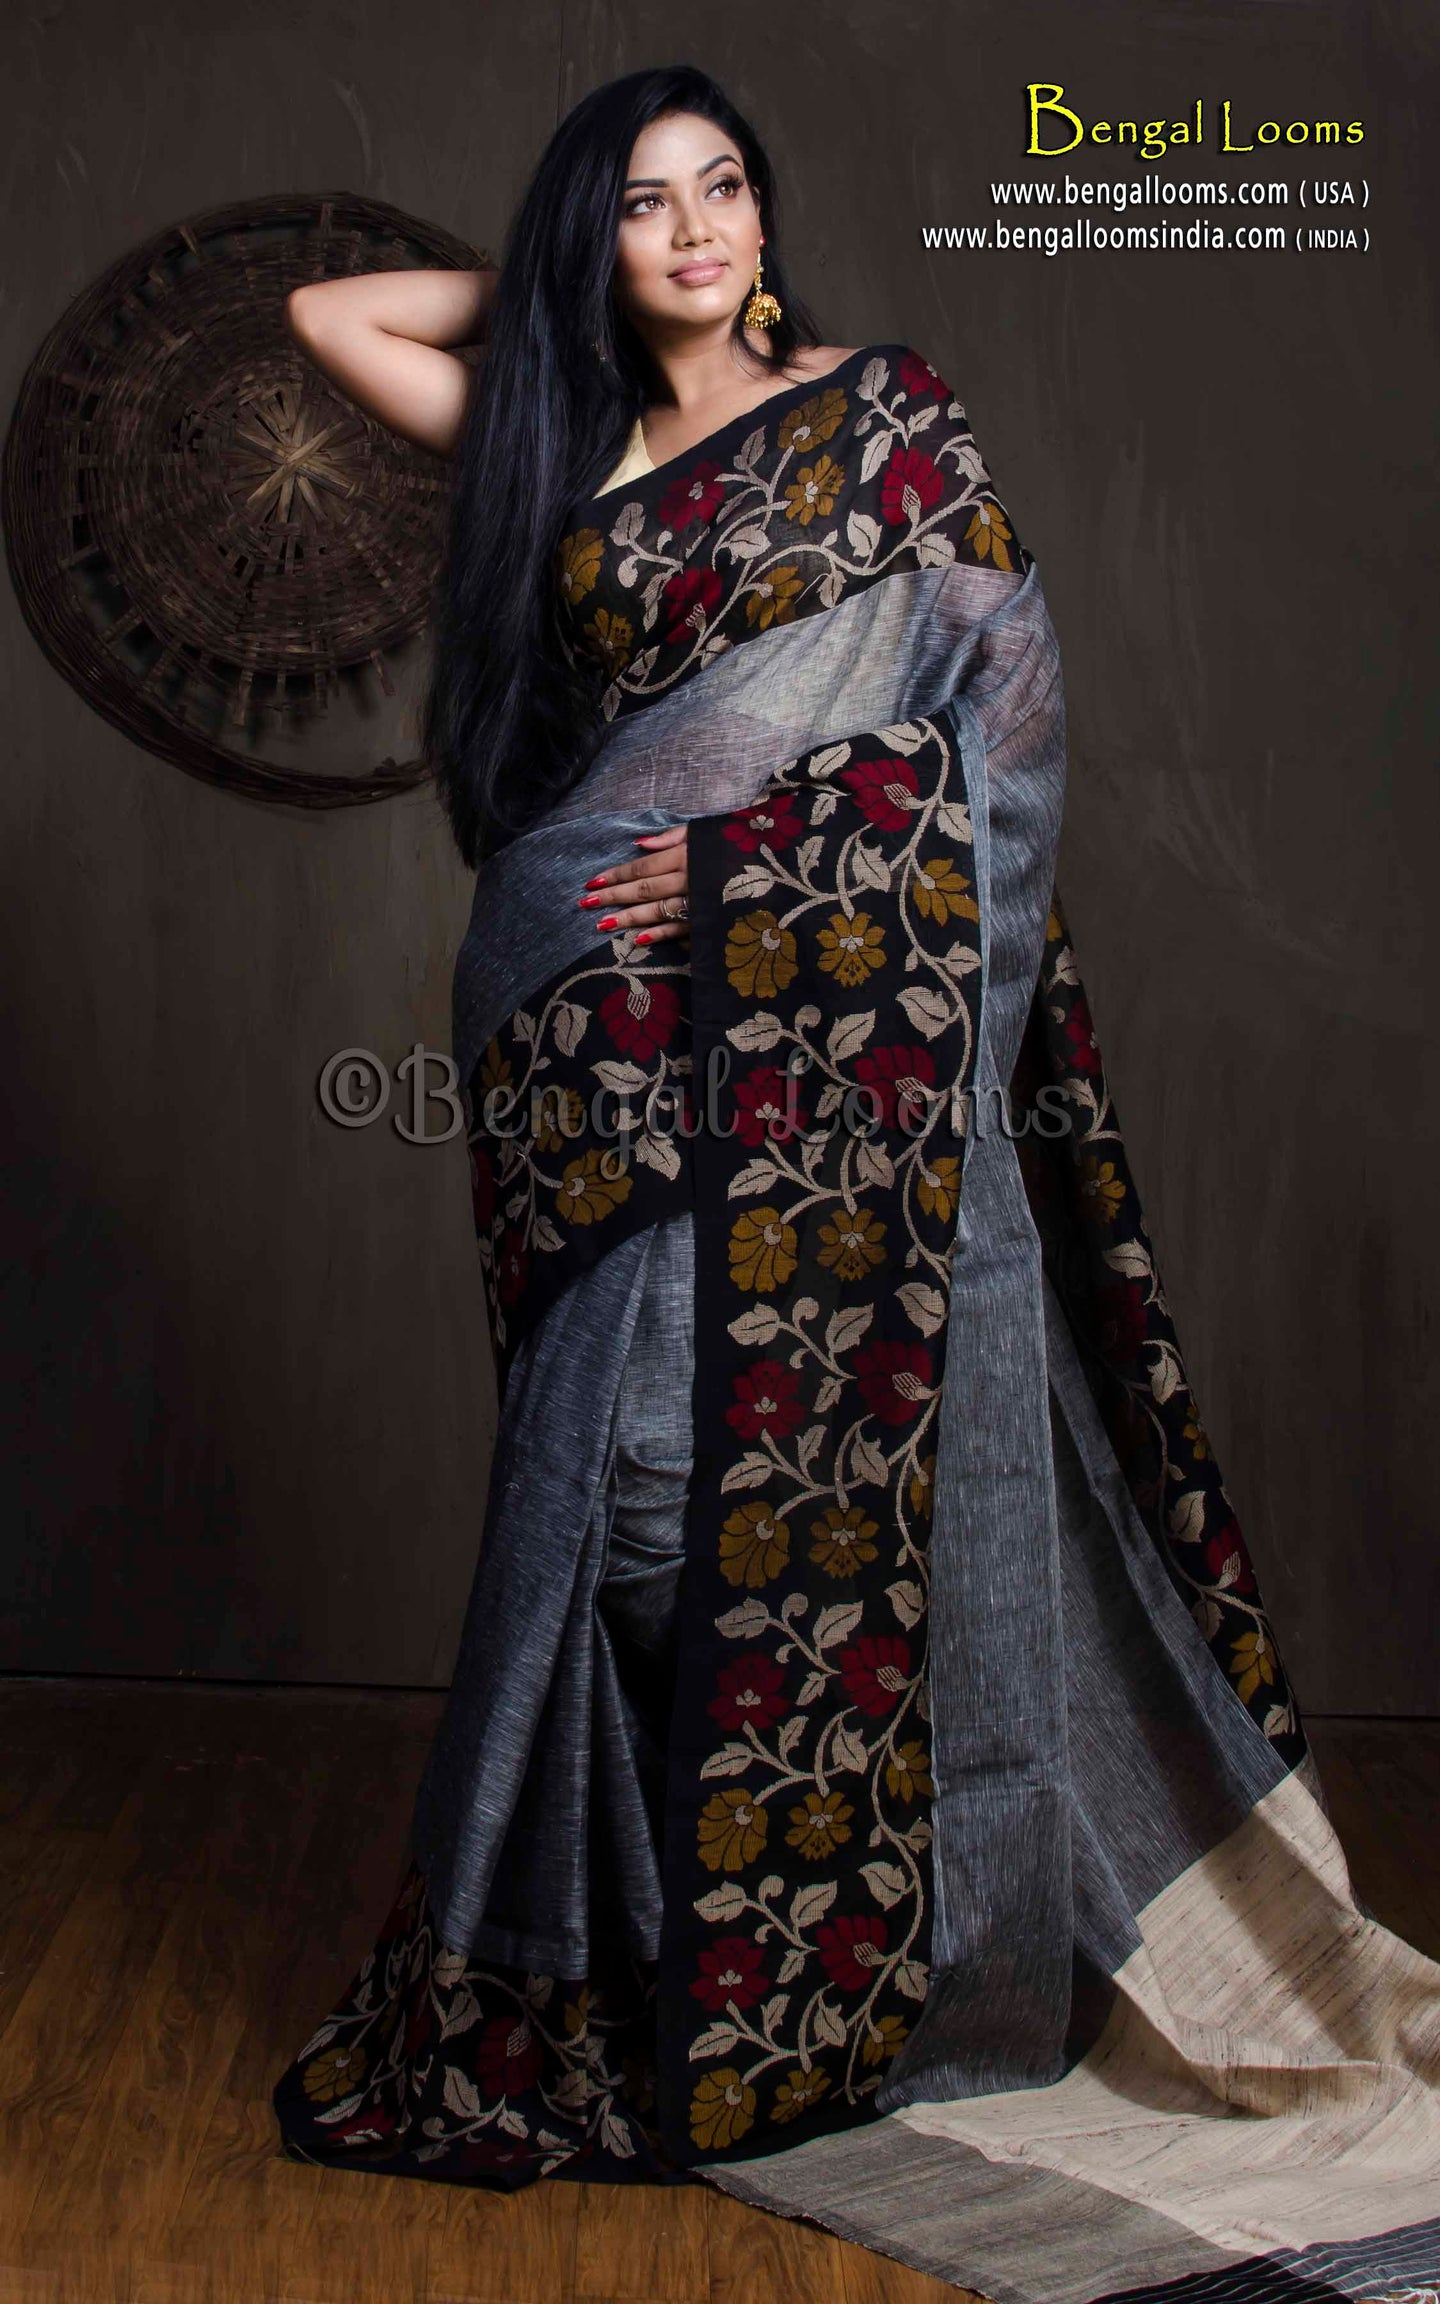 100 Thread Count Linen Jamdani Saree in Gray and Black from Bengal Looms India